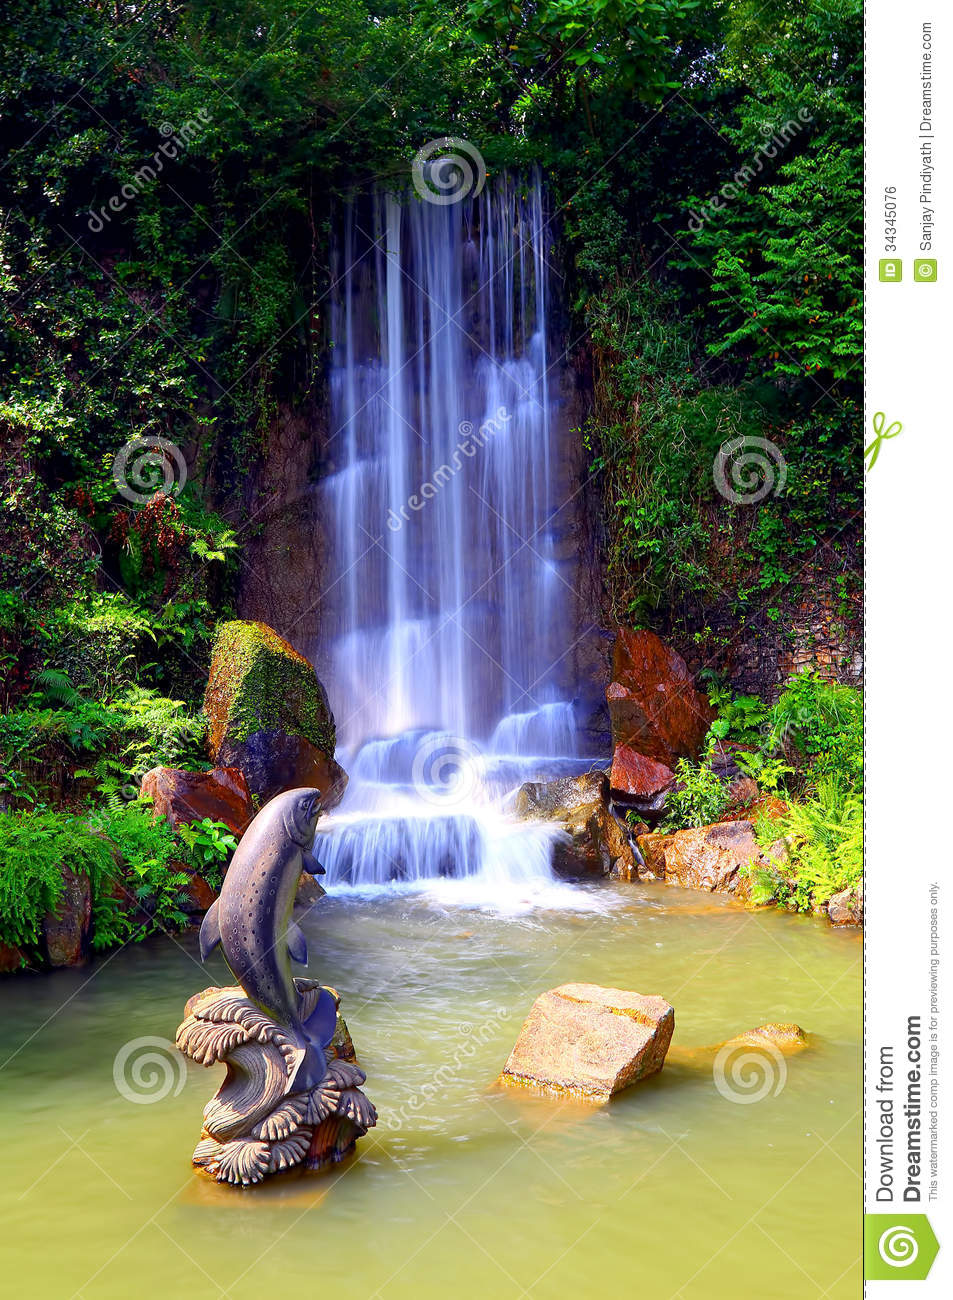 Waterfall in zen garden royalty free stock image image for Zen garden waterfall